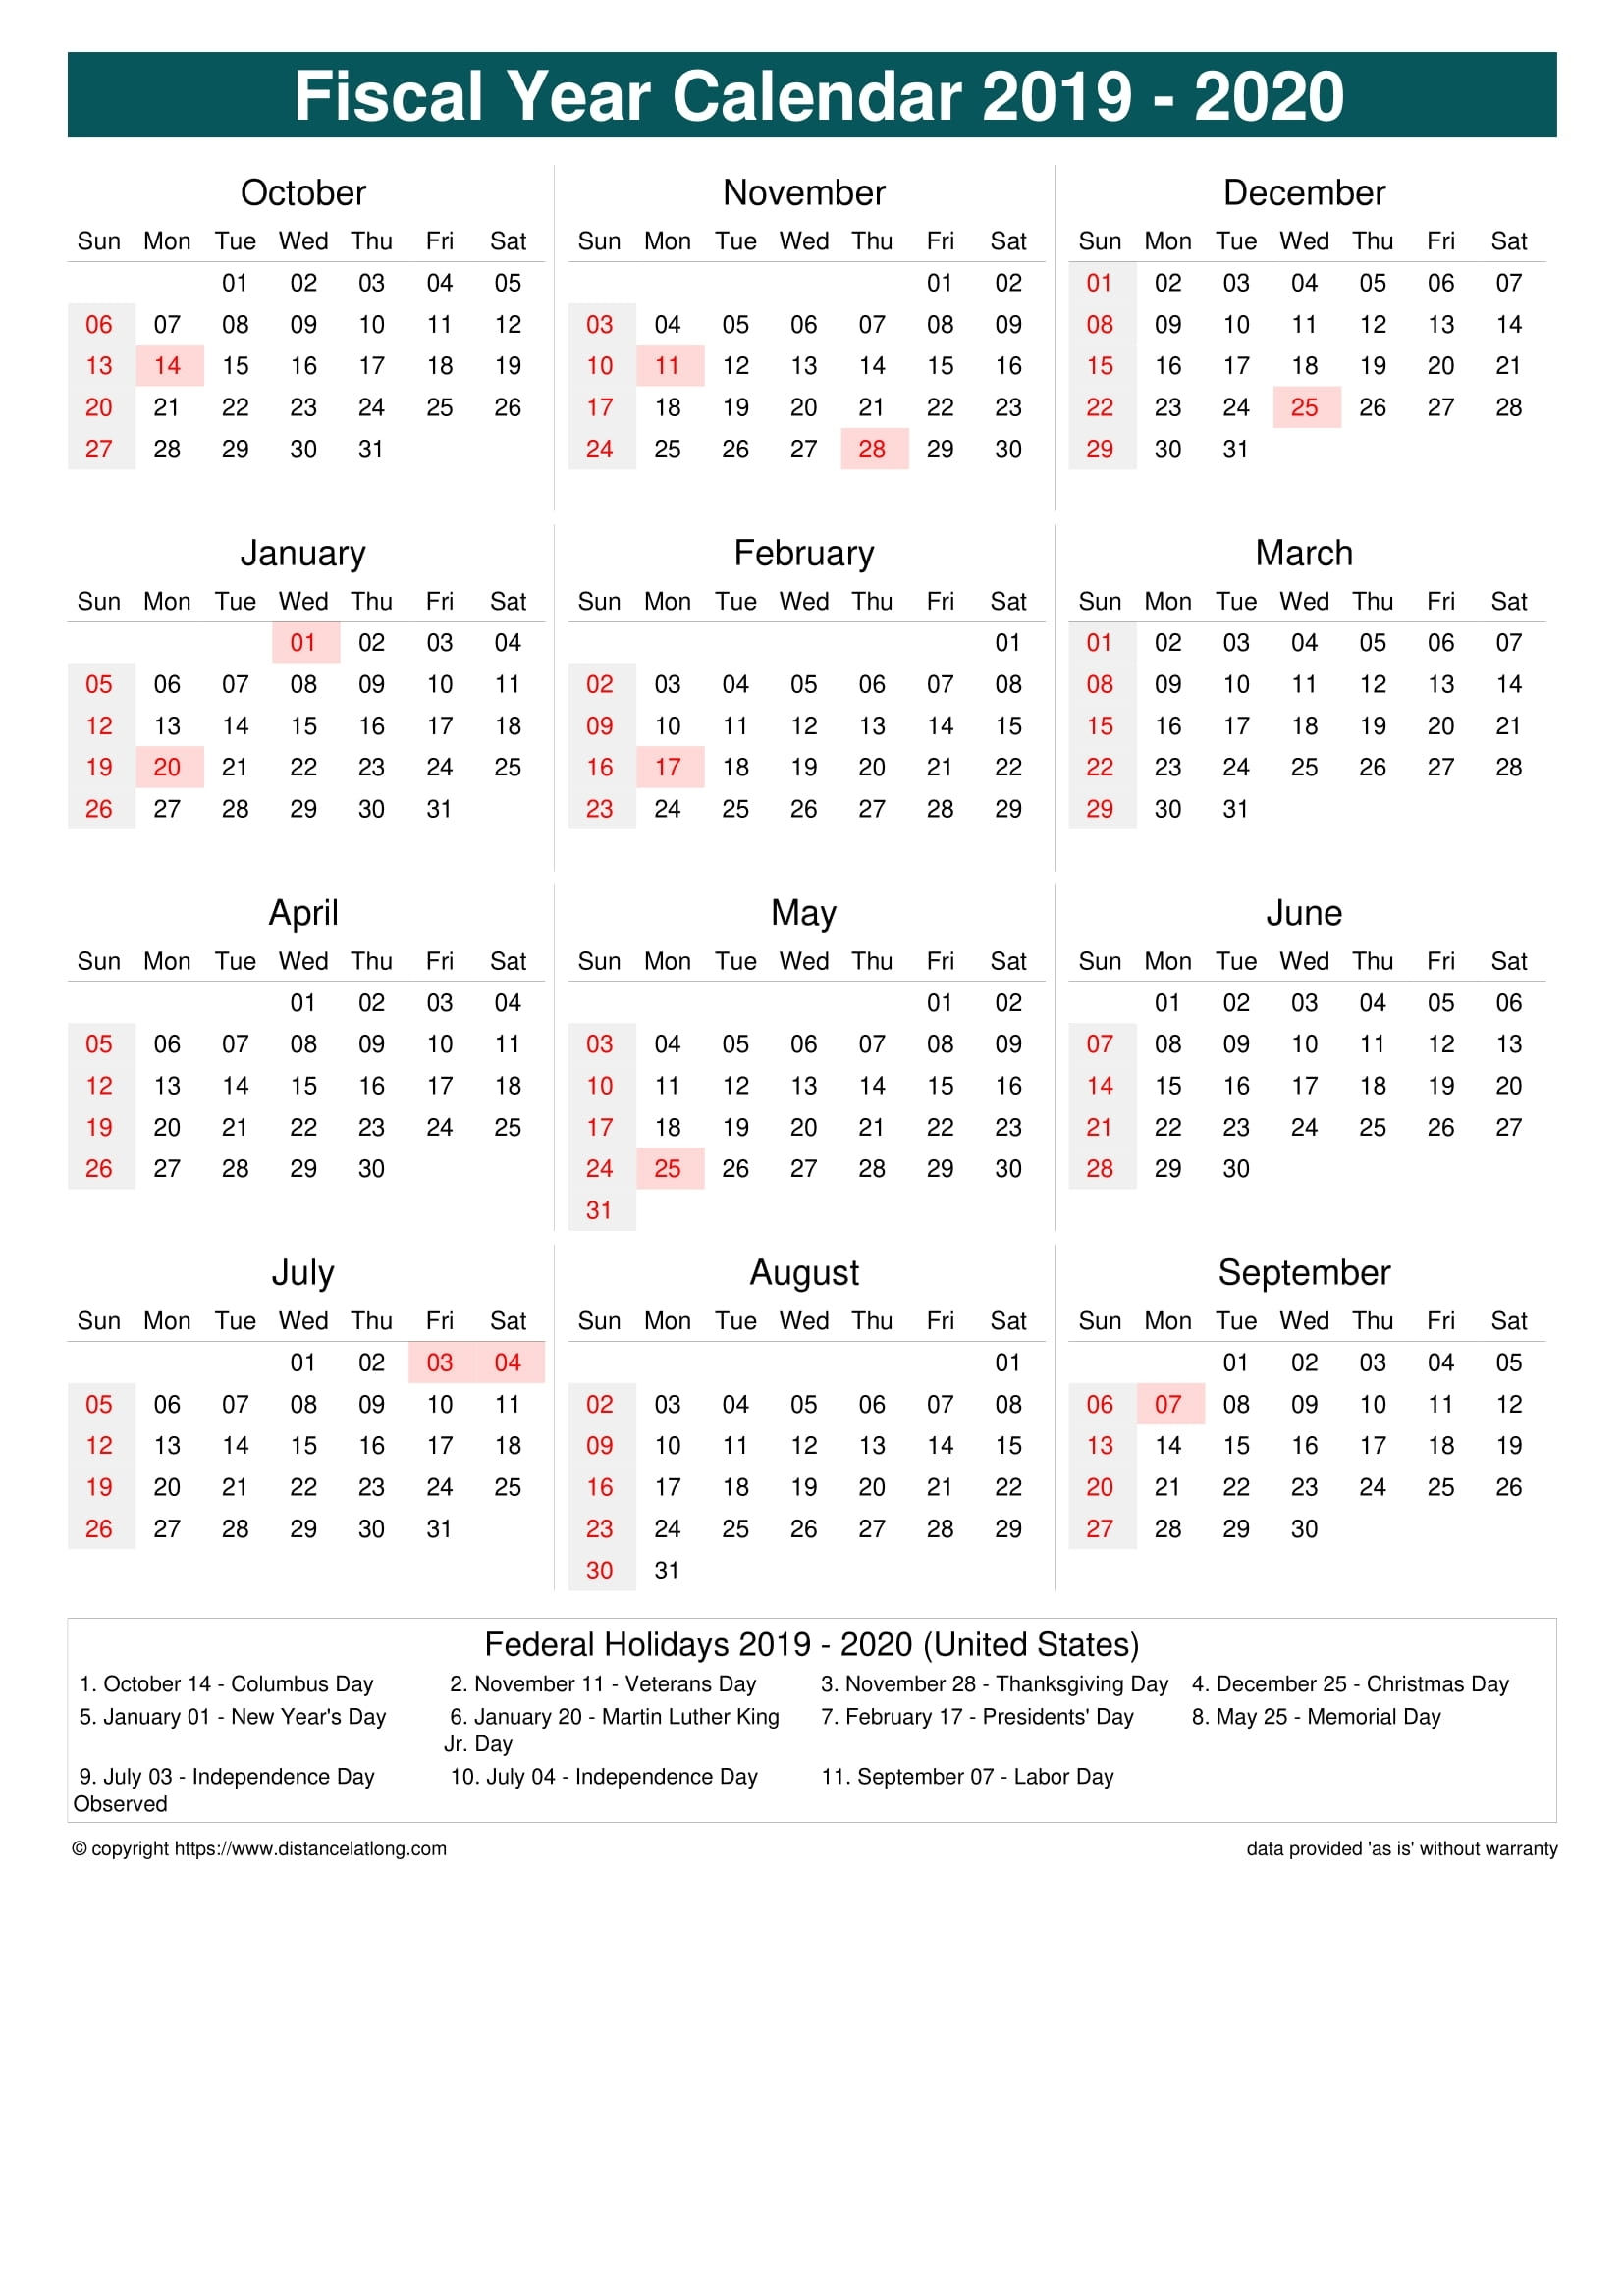 Fiscal Year 2019-2020 Calendar Templates, Free Printable with regard to Financial Calendar 2019-2020 In Weeks